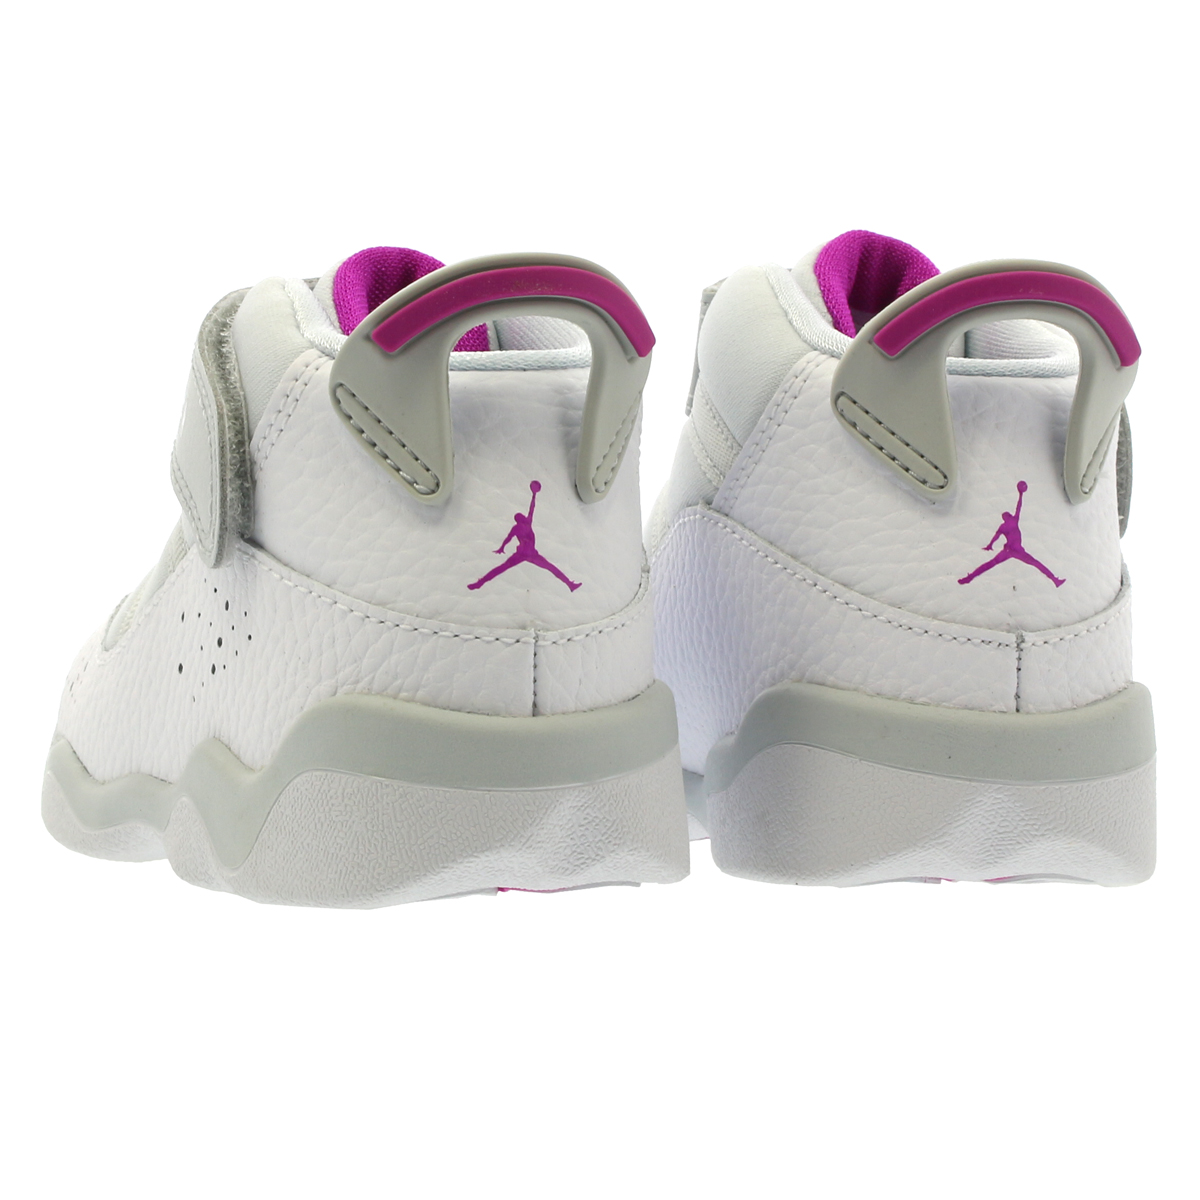 e84538b76c3 LOWTEX PLUS: NIKE JORDAN 6 RINGS GT Nike Air Jordan 6 RINGS Co.,Ltd ...